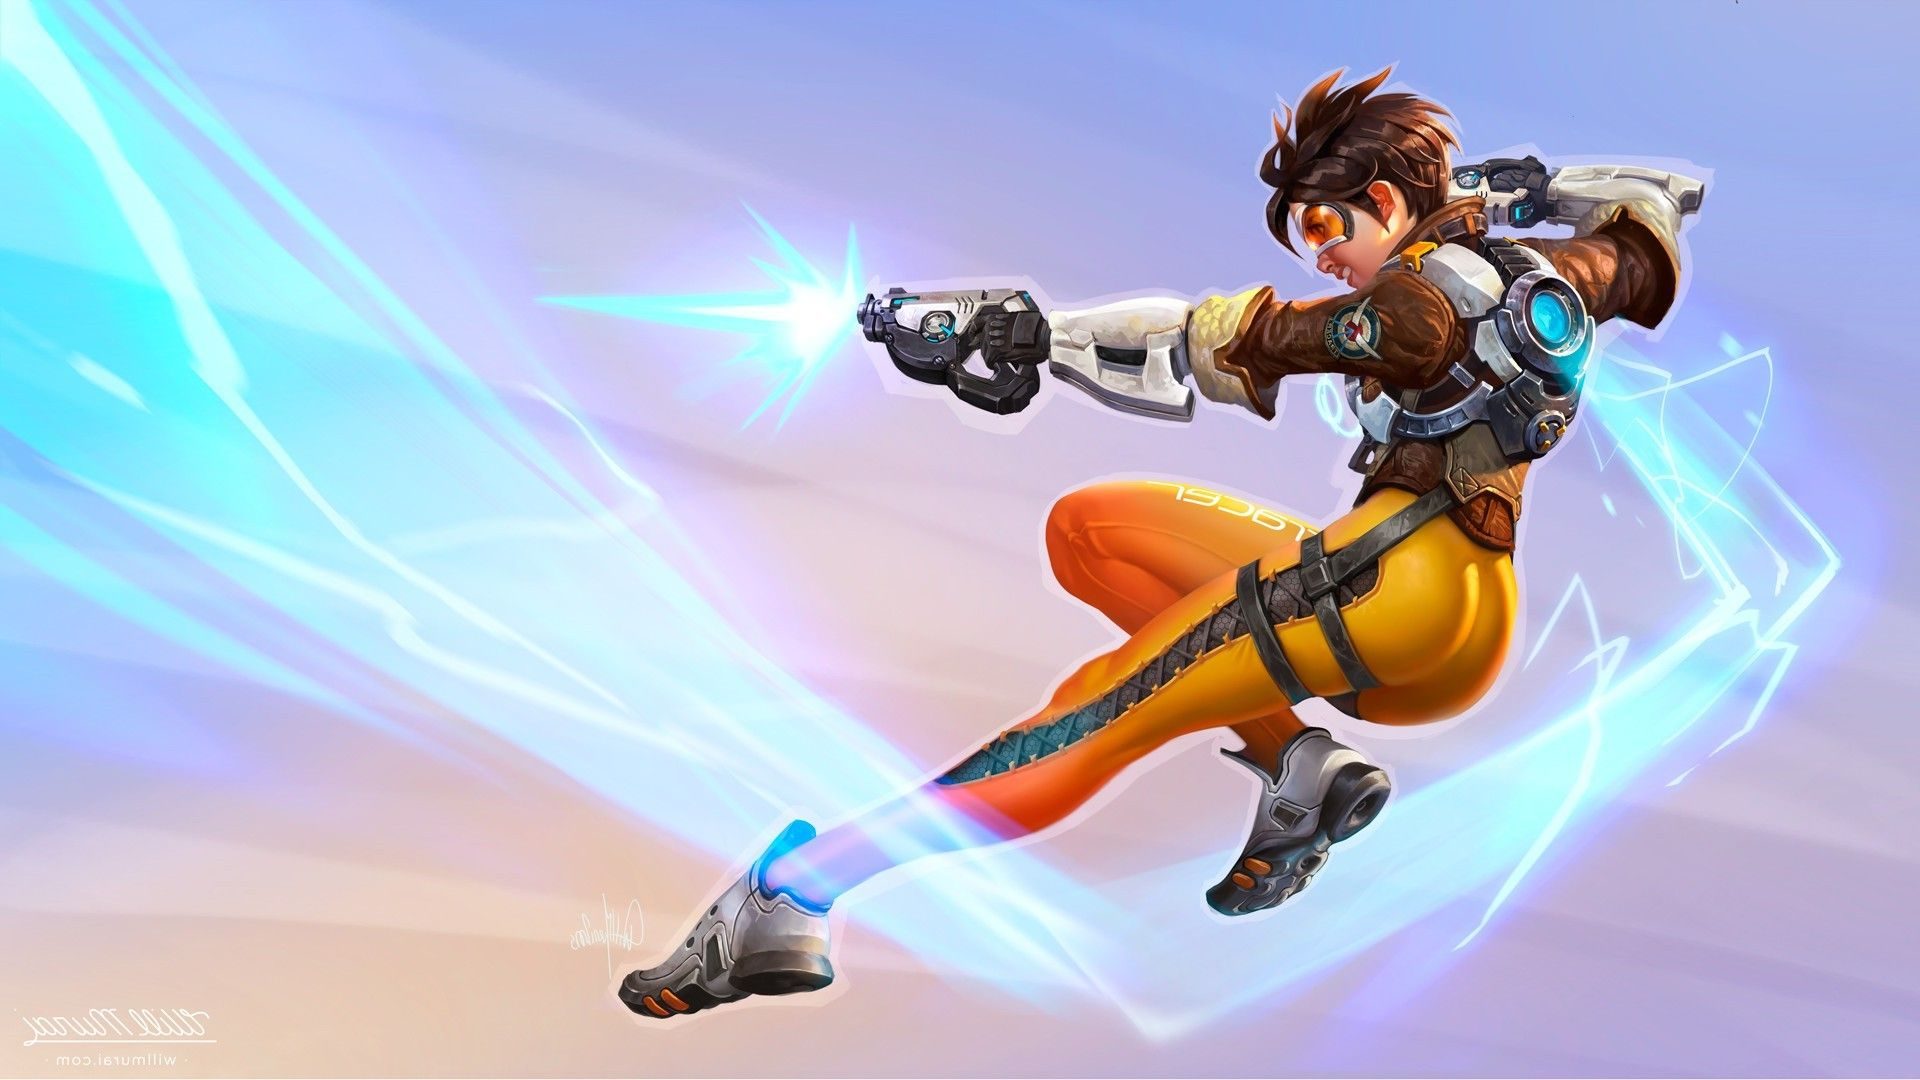 Tracer Overwatch Hd Wallpapers Backgrounds Wallpaper In 2019